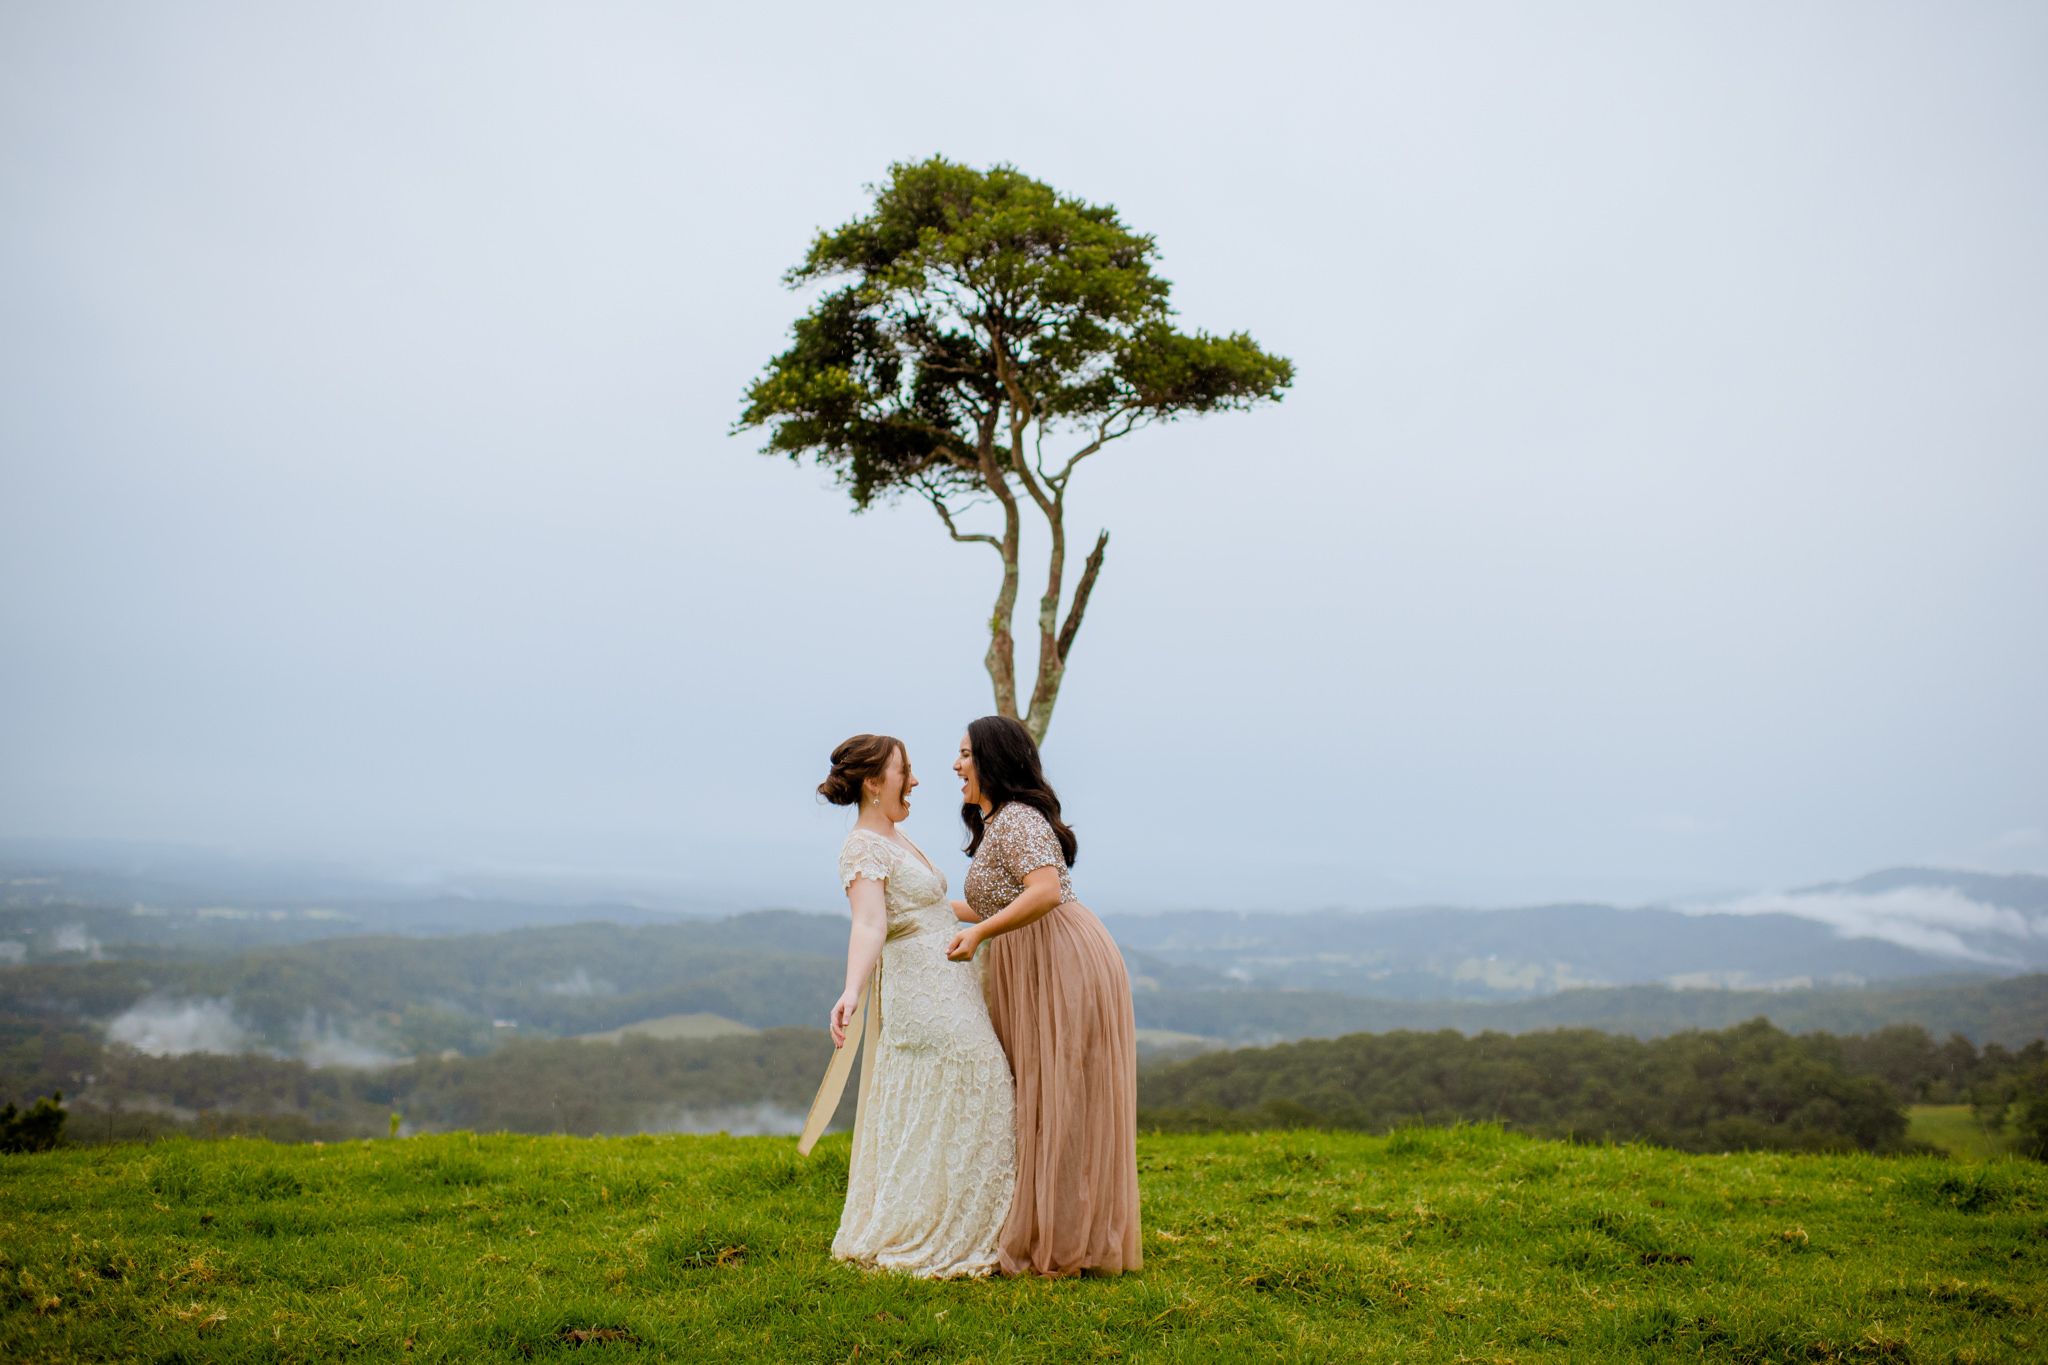 Two brides playfully dancing in front of a single tree on a grassy hill in Maleny